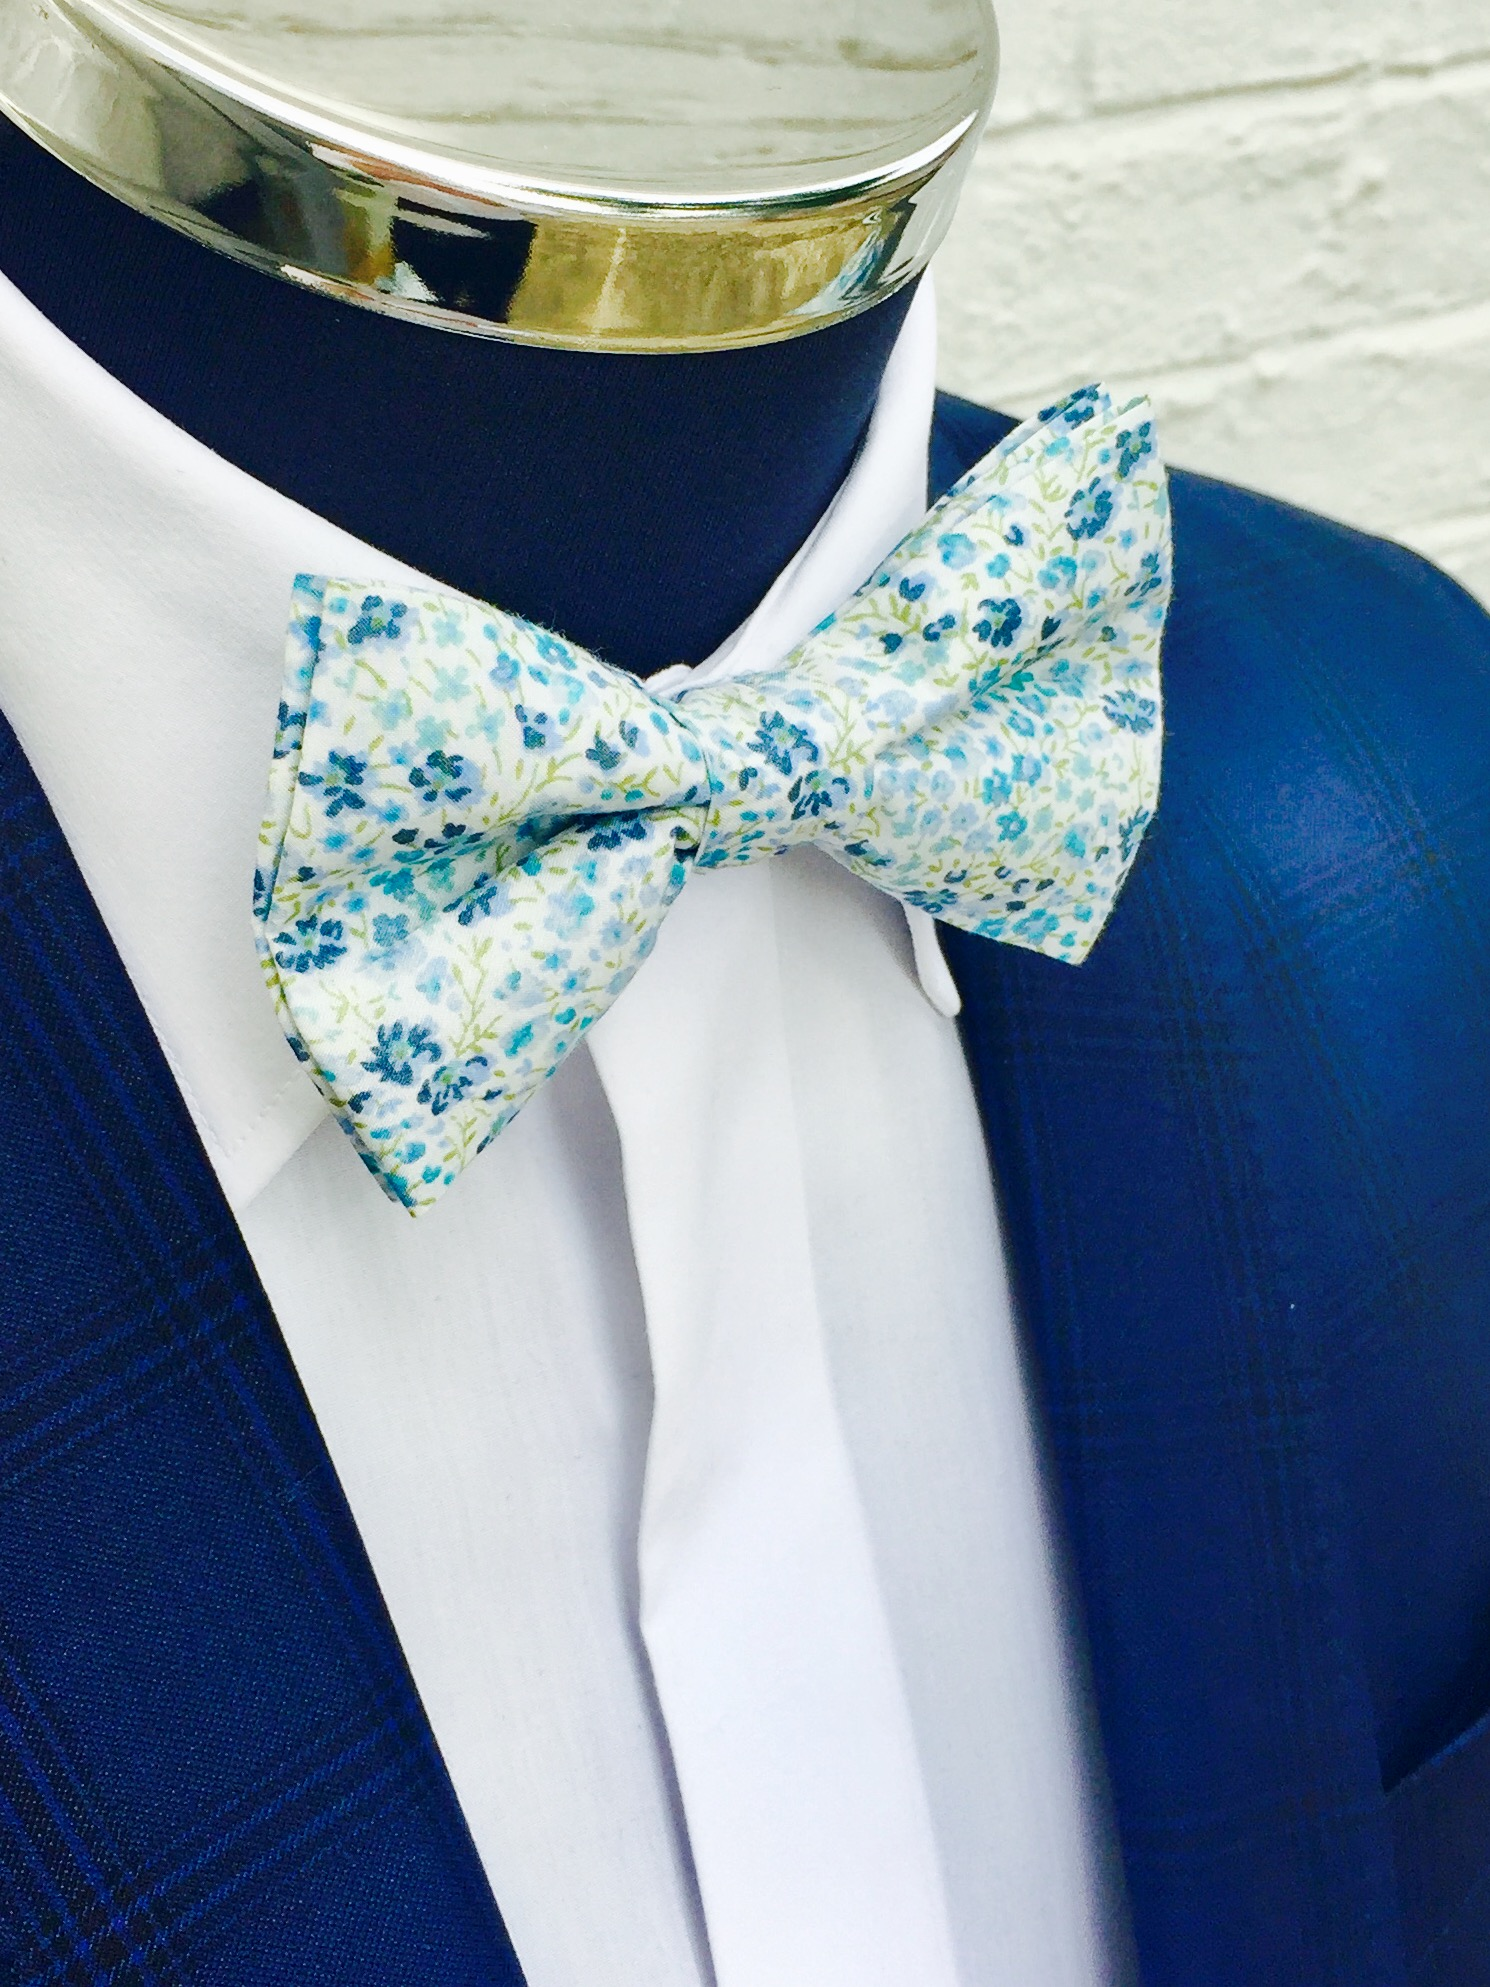 Sale 70/% Off Floral Bow Tie Navy Blue with Placid Blue and Dazzling Blue Flowers  Bow-Tie Cotton Light Blue  Wedding Navy Blue Floral  SALE